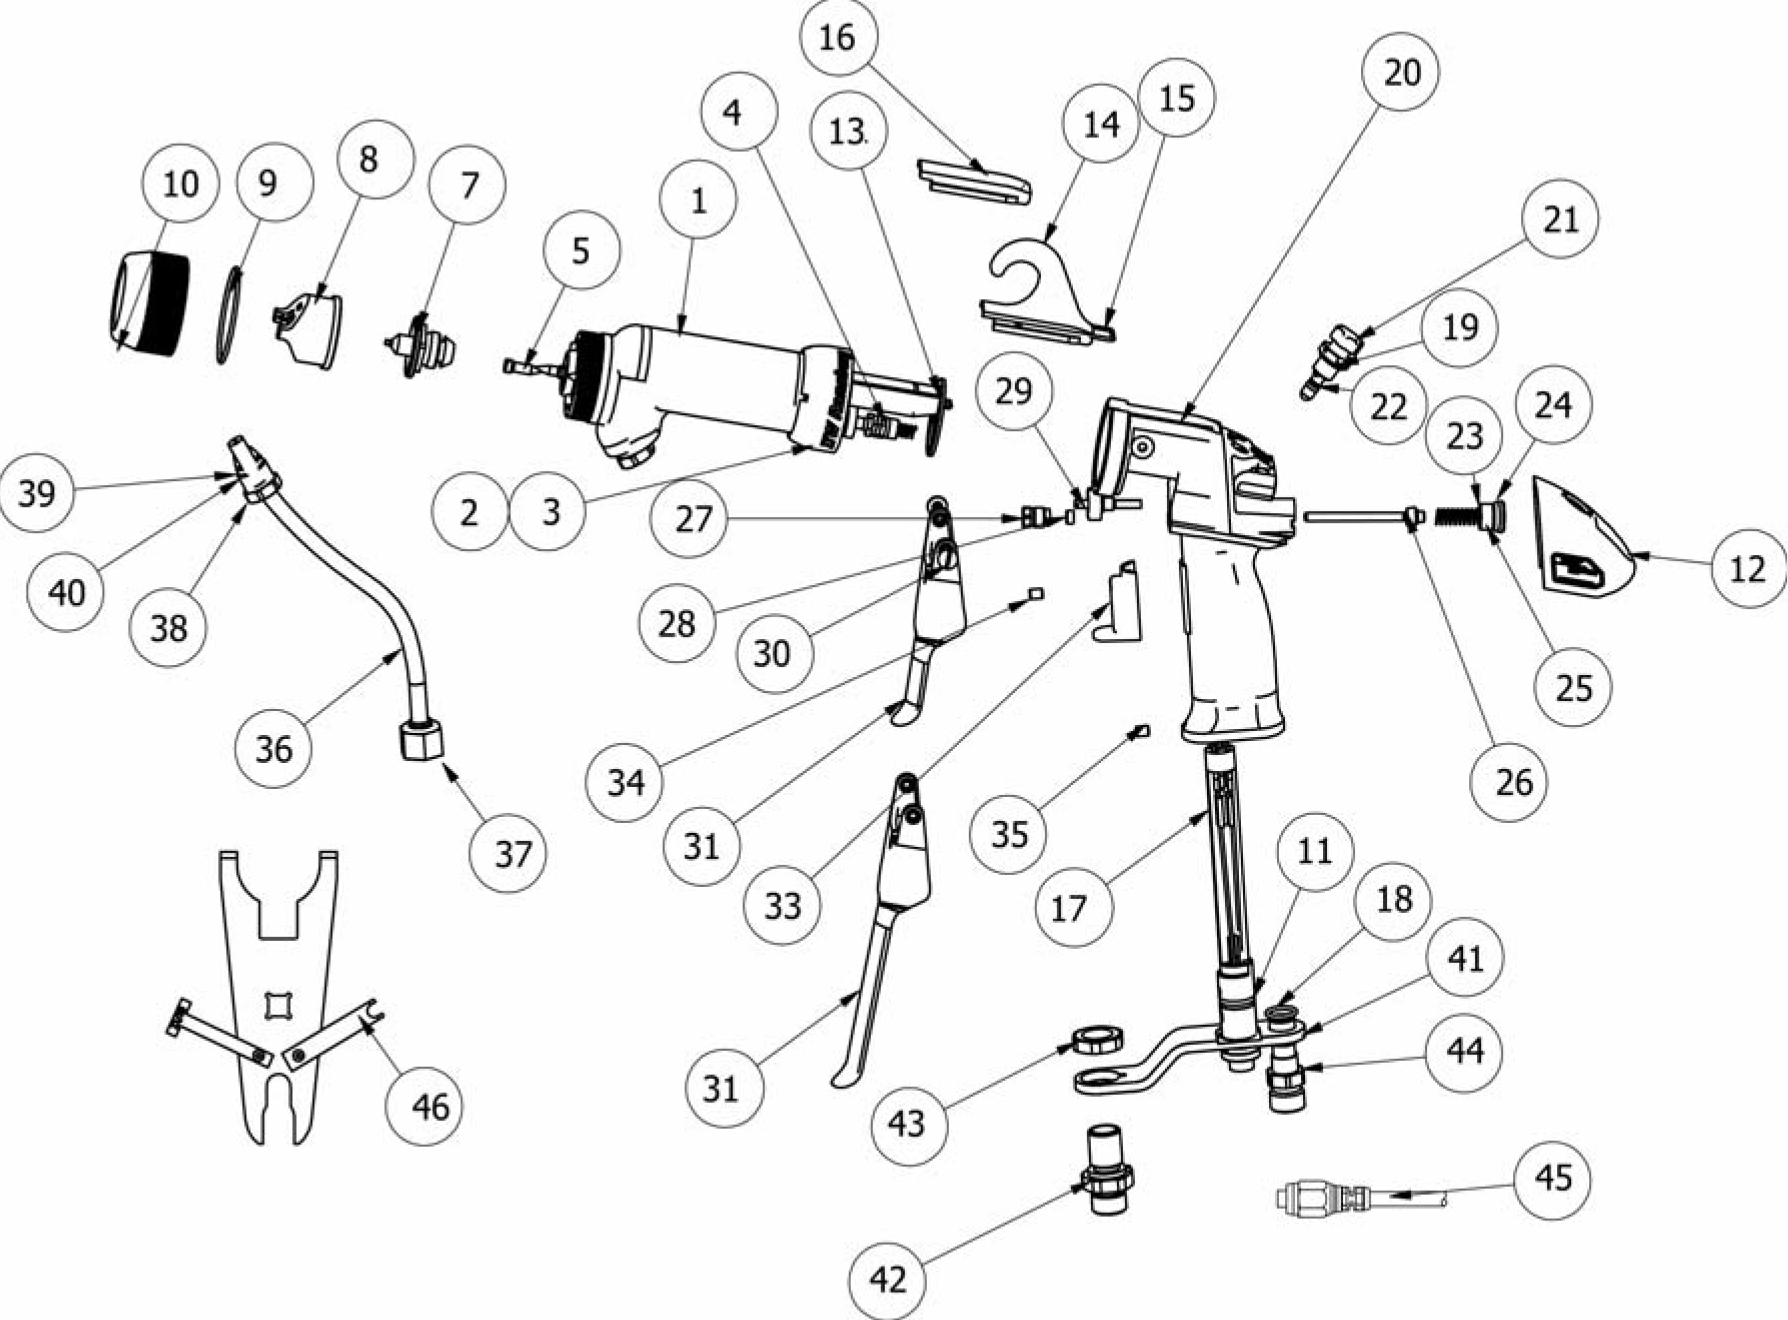 2013 jeep patriot fuse box diagram with Kia Spectra Headlight Diagram on Wiring Diagram For Jeep Patriot 2012 moreover 2012 Subaru Forester Fuse Diagram further 2000 Fuse Box Diagram 158442 likewise Dayton 2x441 Wiring Diagram besides 2014 Jeep Wrangler Stereo Wiring Harness.